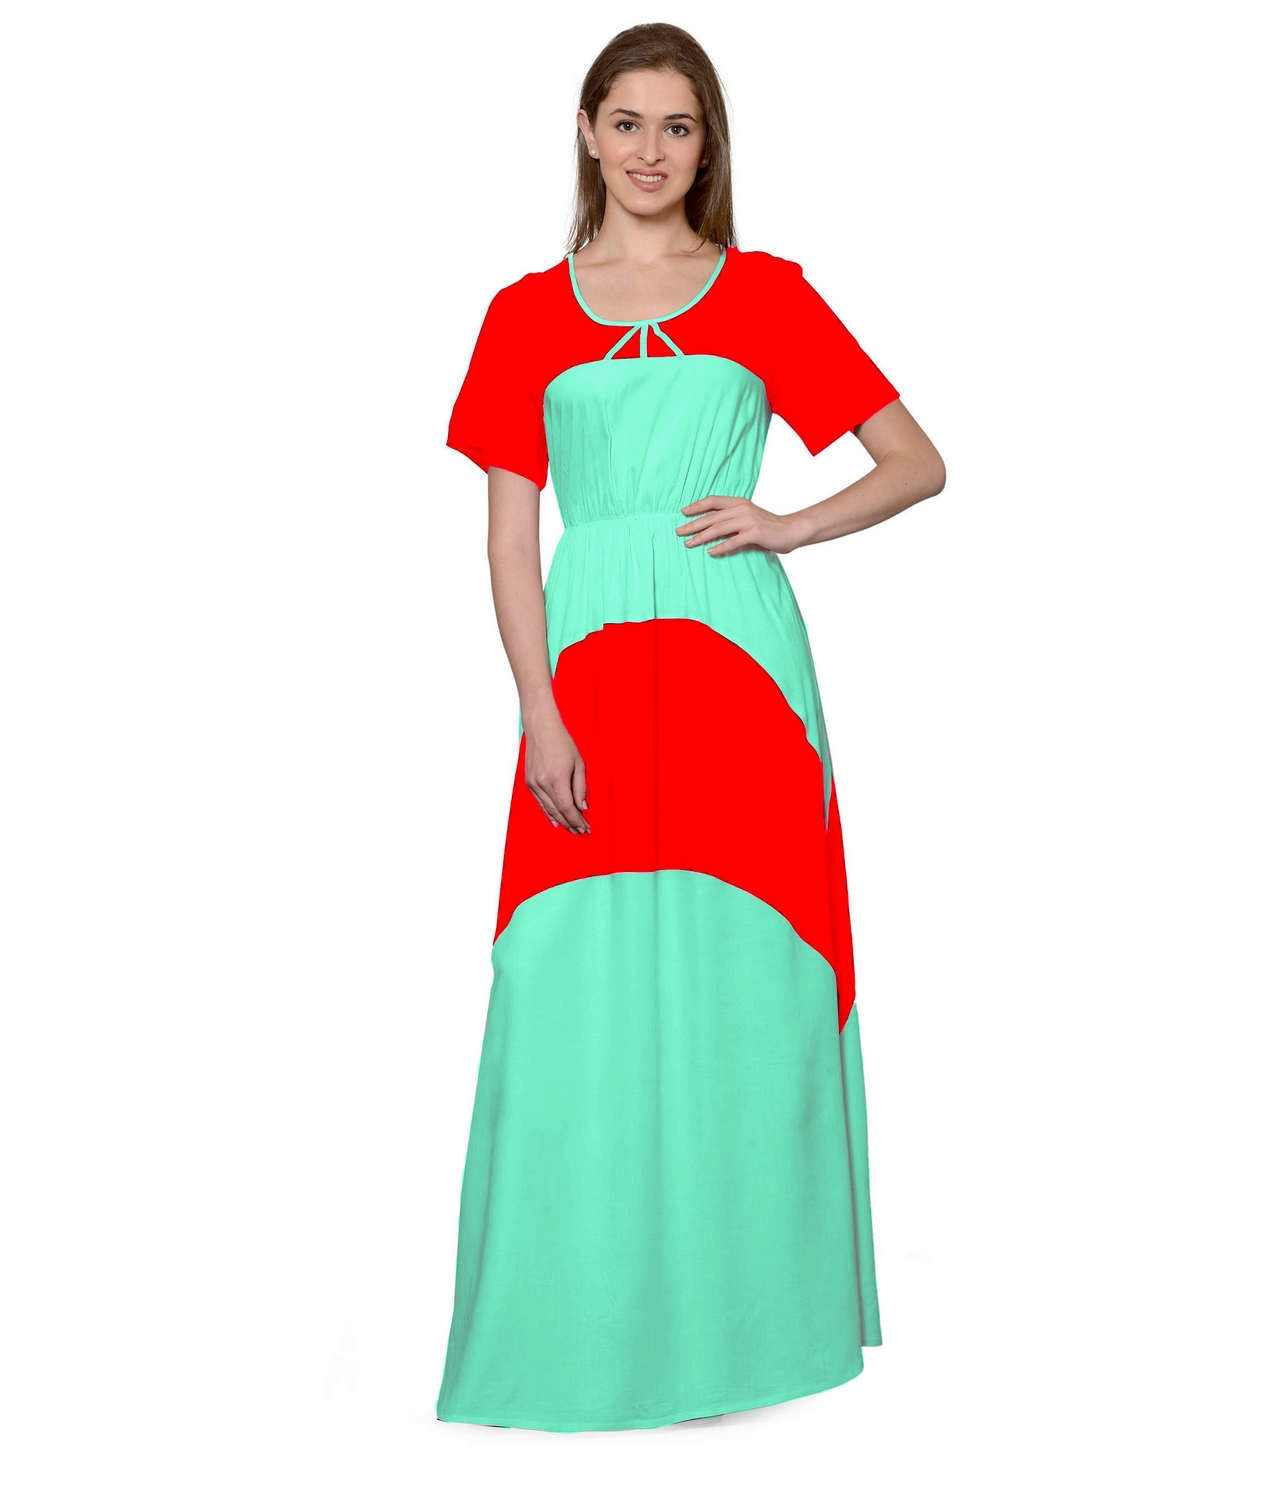 Color Block Slim Fit Maxi Dress Gown in Red:Teal Green